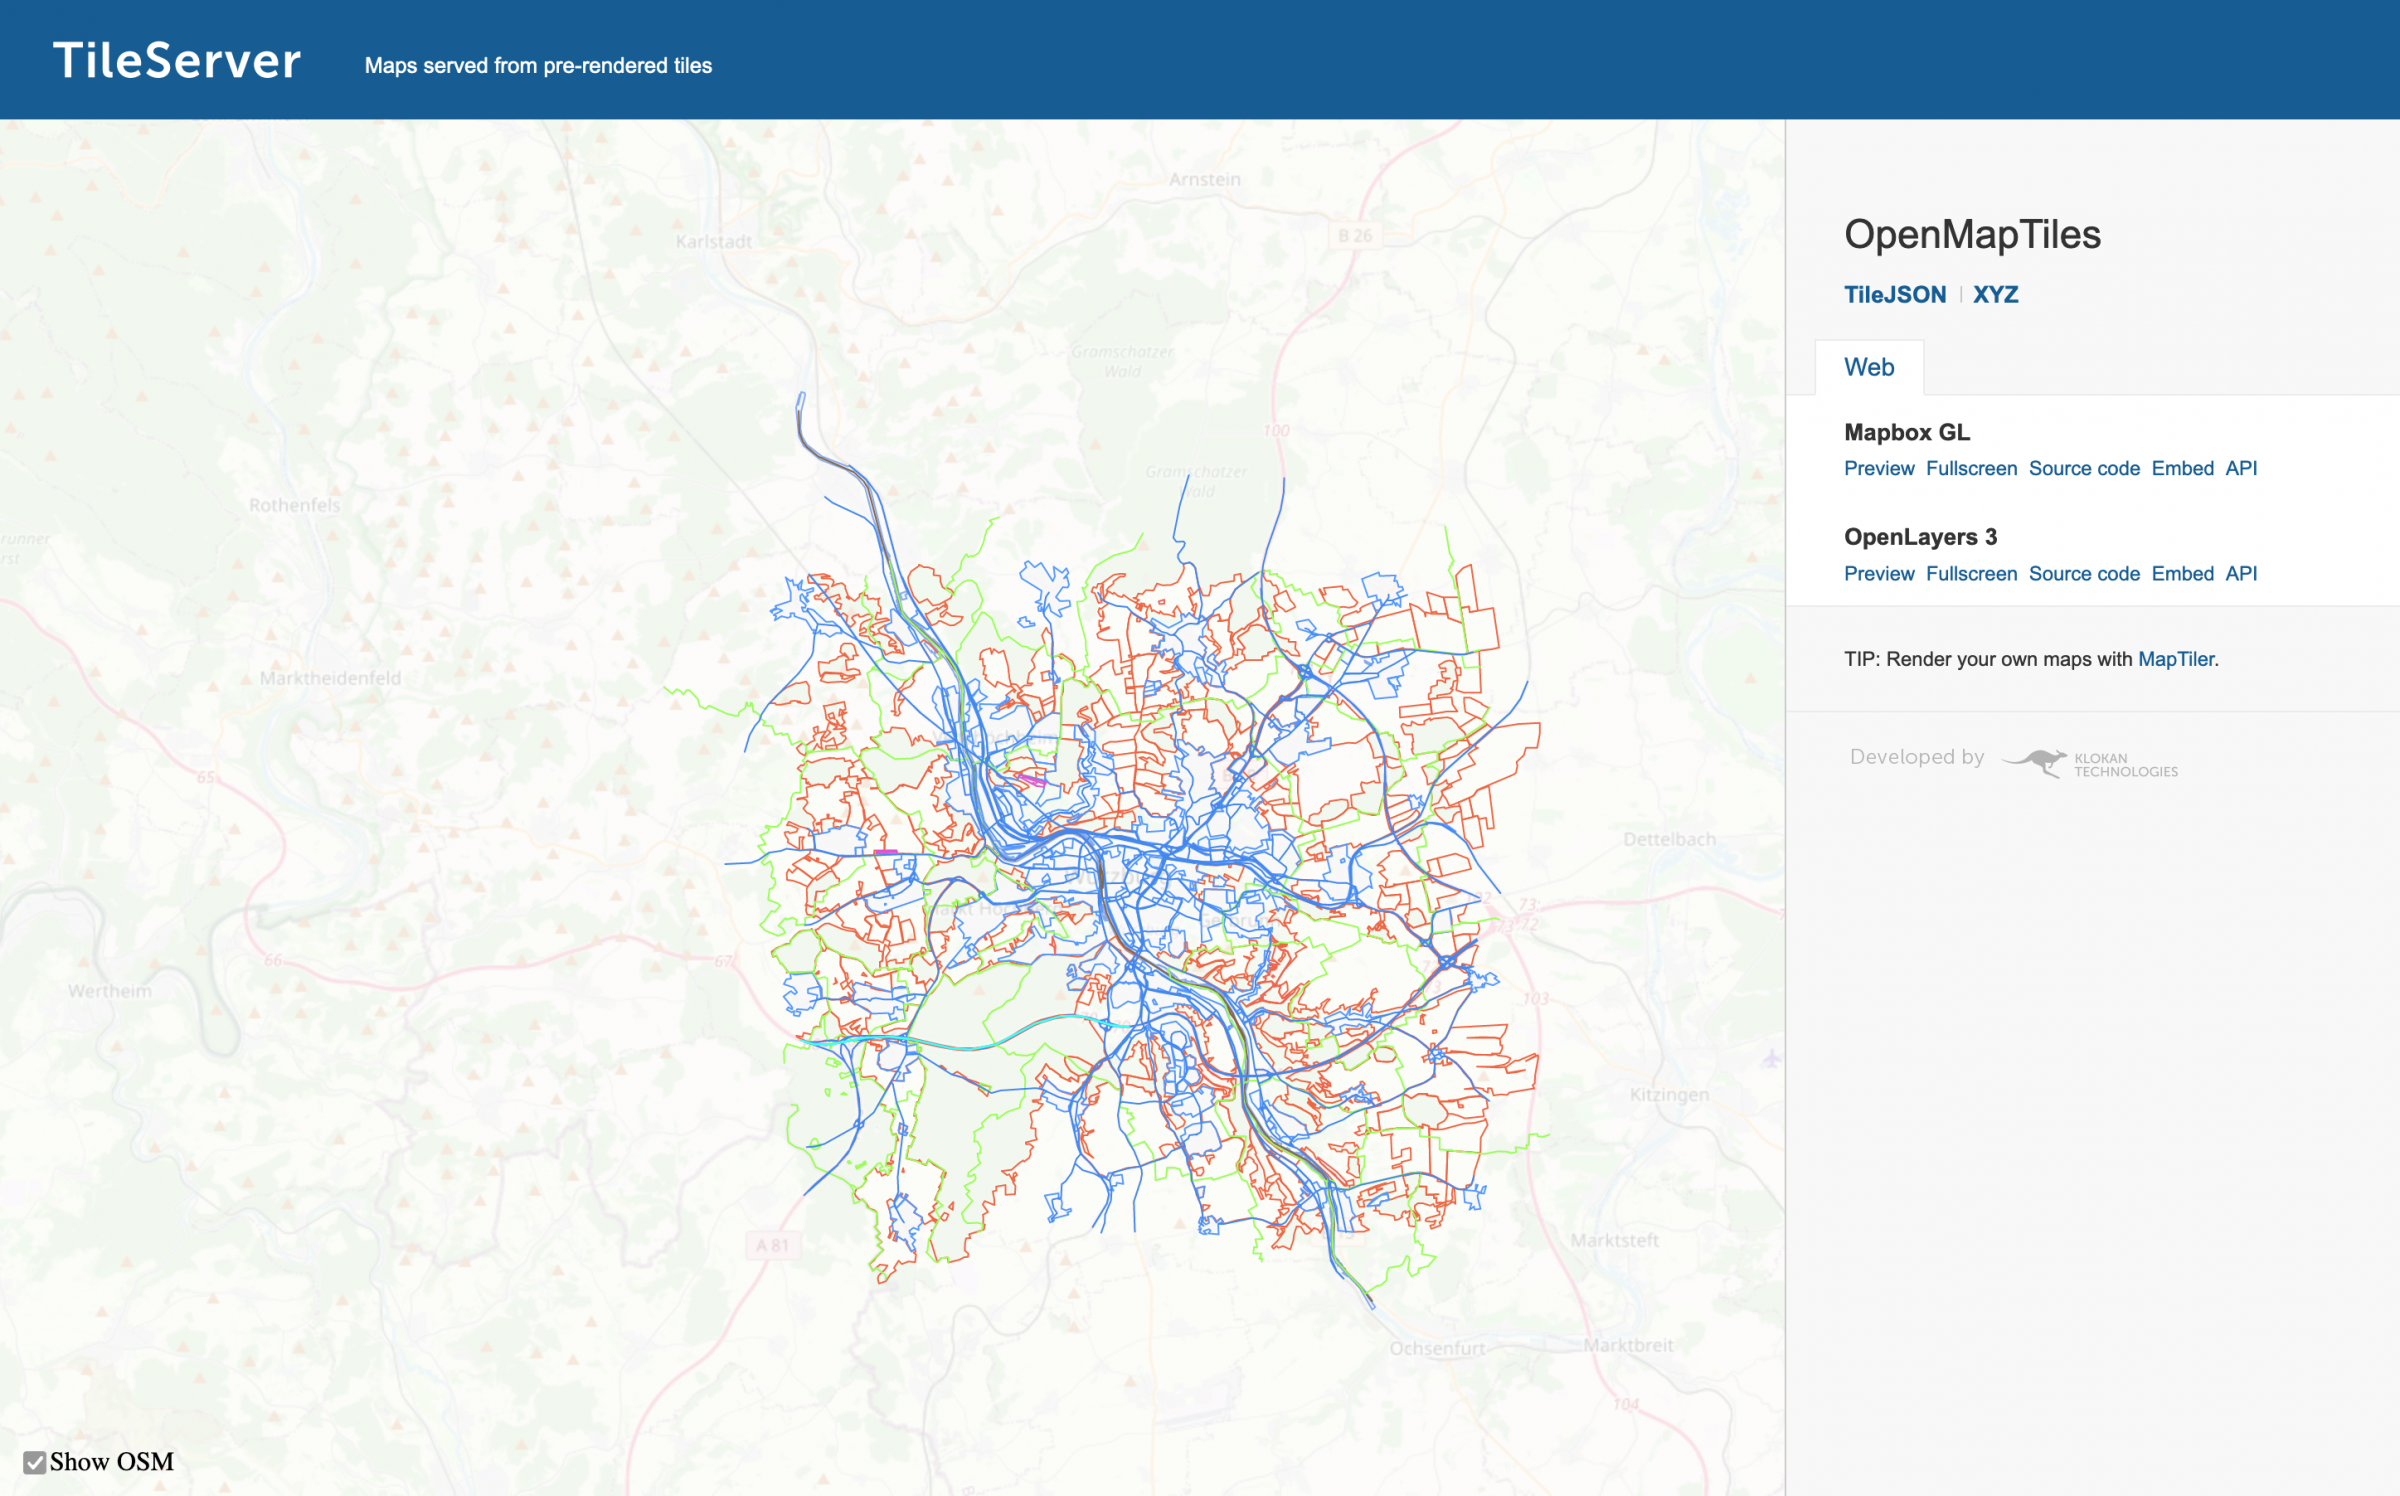 The tileserver interface showing a map populated with OpenStreetMap data